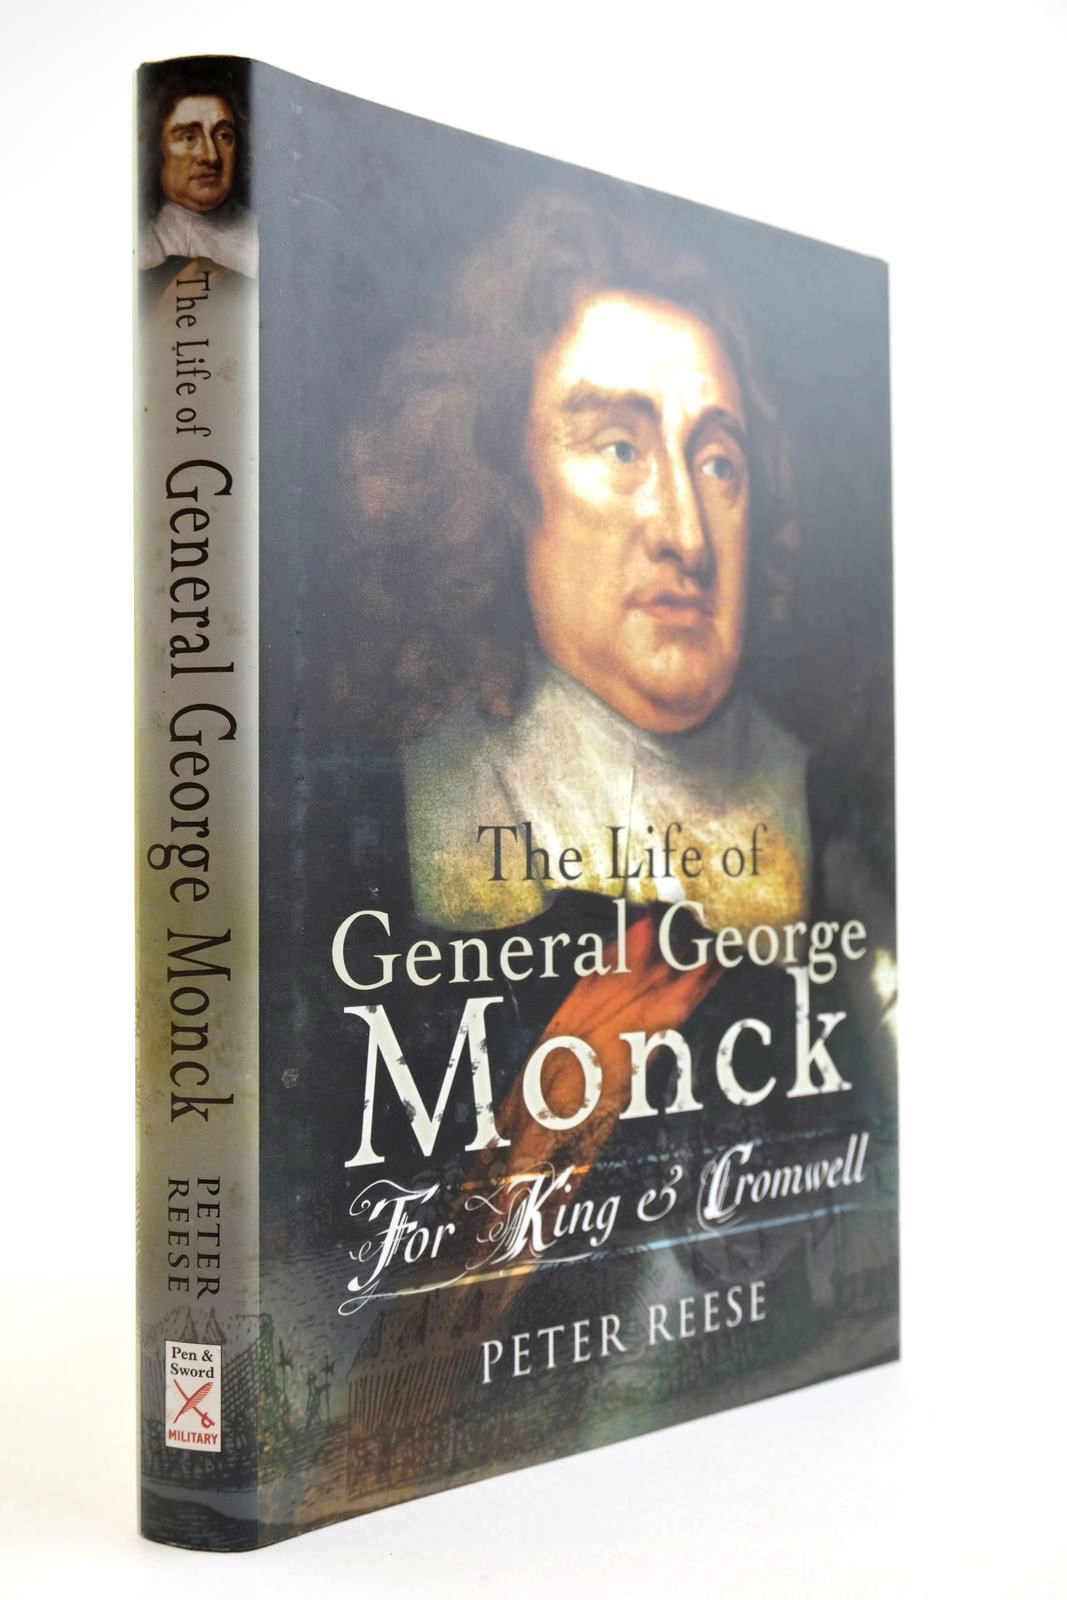 Photo of THE LIFE OF GENERAL GEORGE MONCK: FOR KING AND CROMWELL written by Reese, Peter published by Pen & Sword Military (STOCK CODE: 2134024)  for sale by Stella & Rose's Books